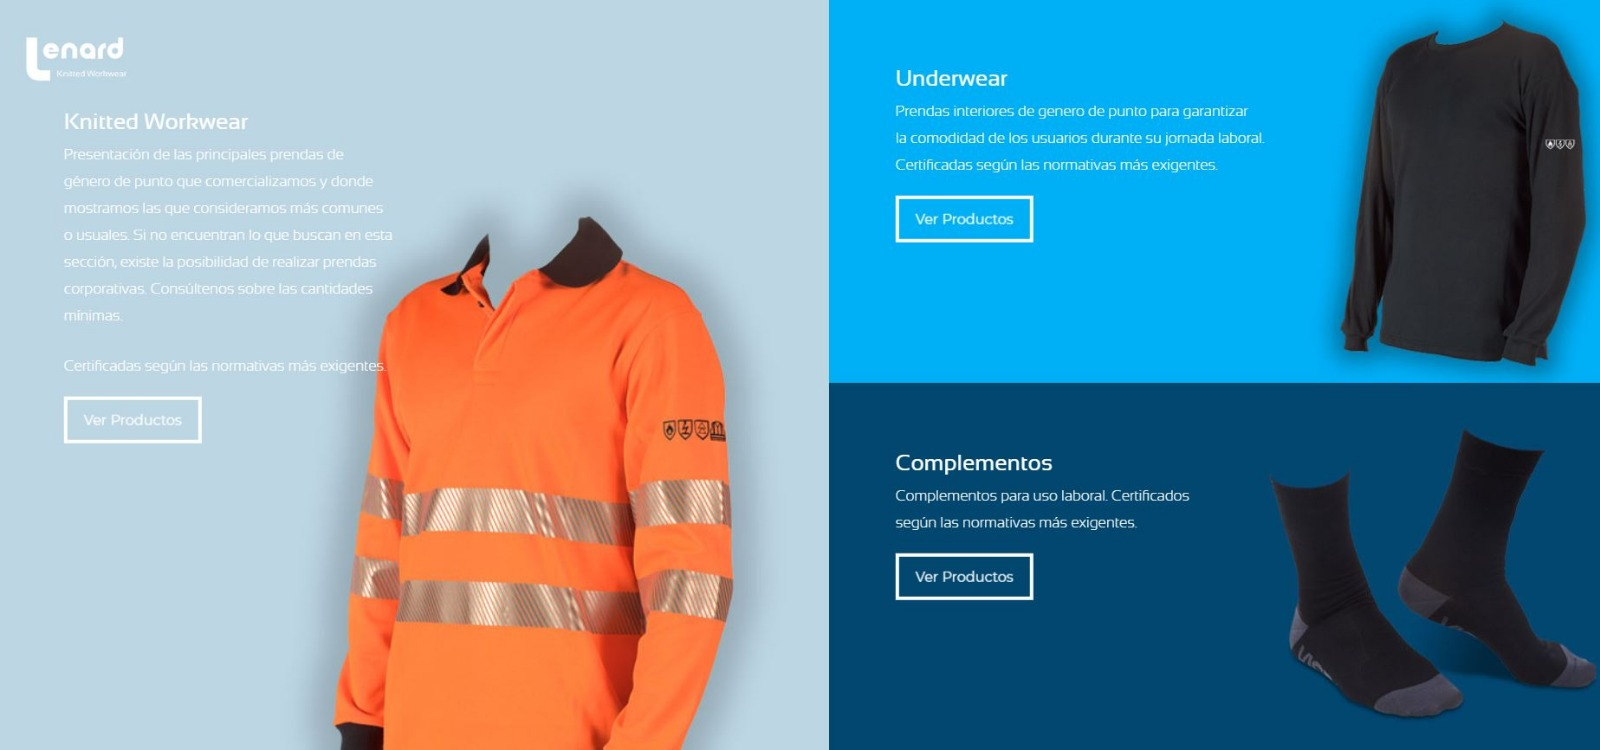 Lenard expands its product range with a collection of knitwear for protection at work